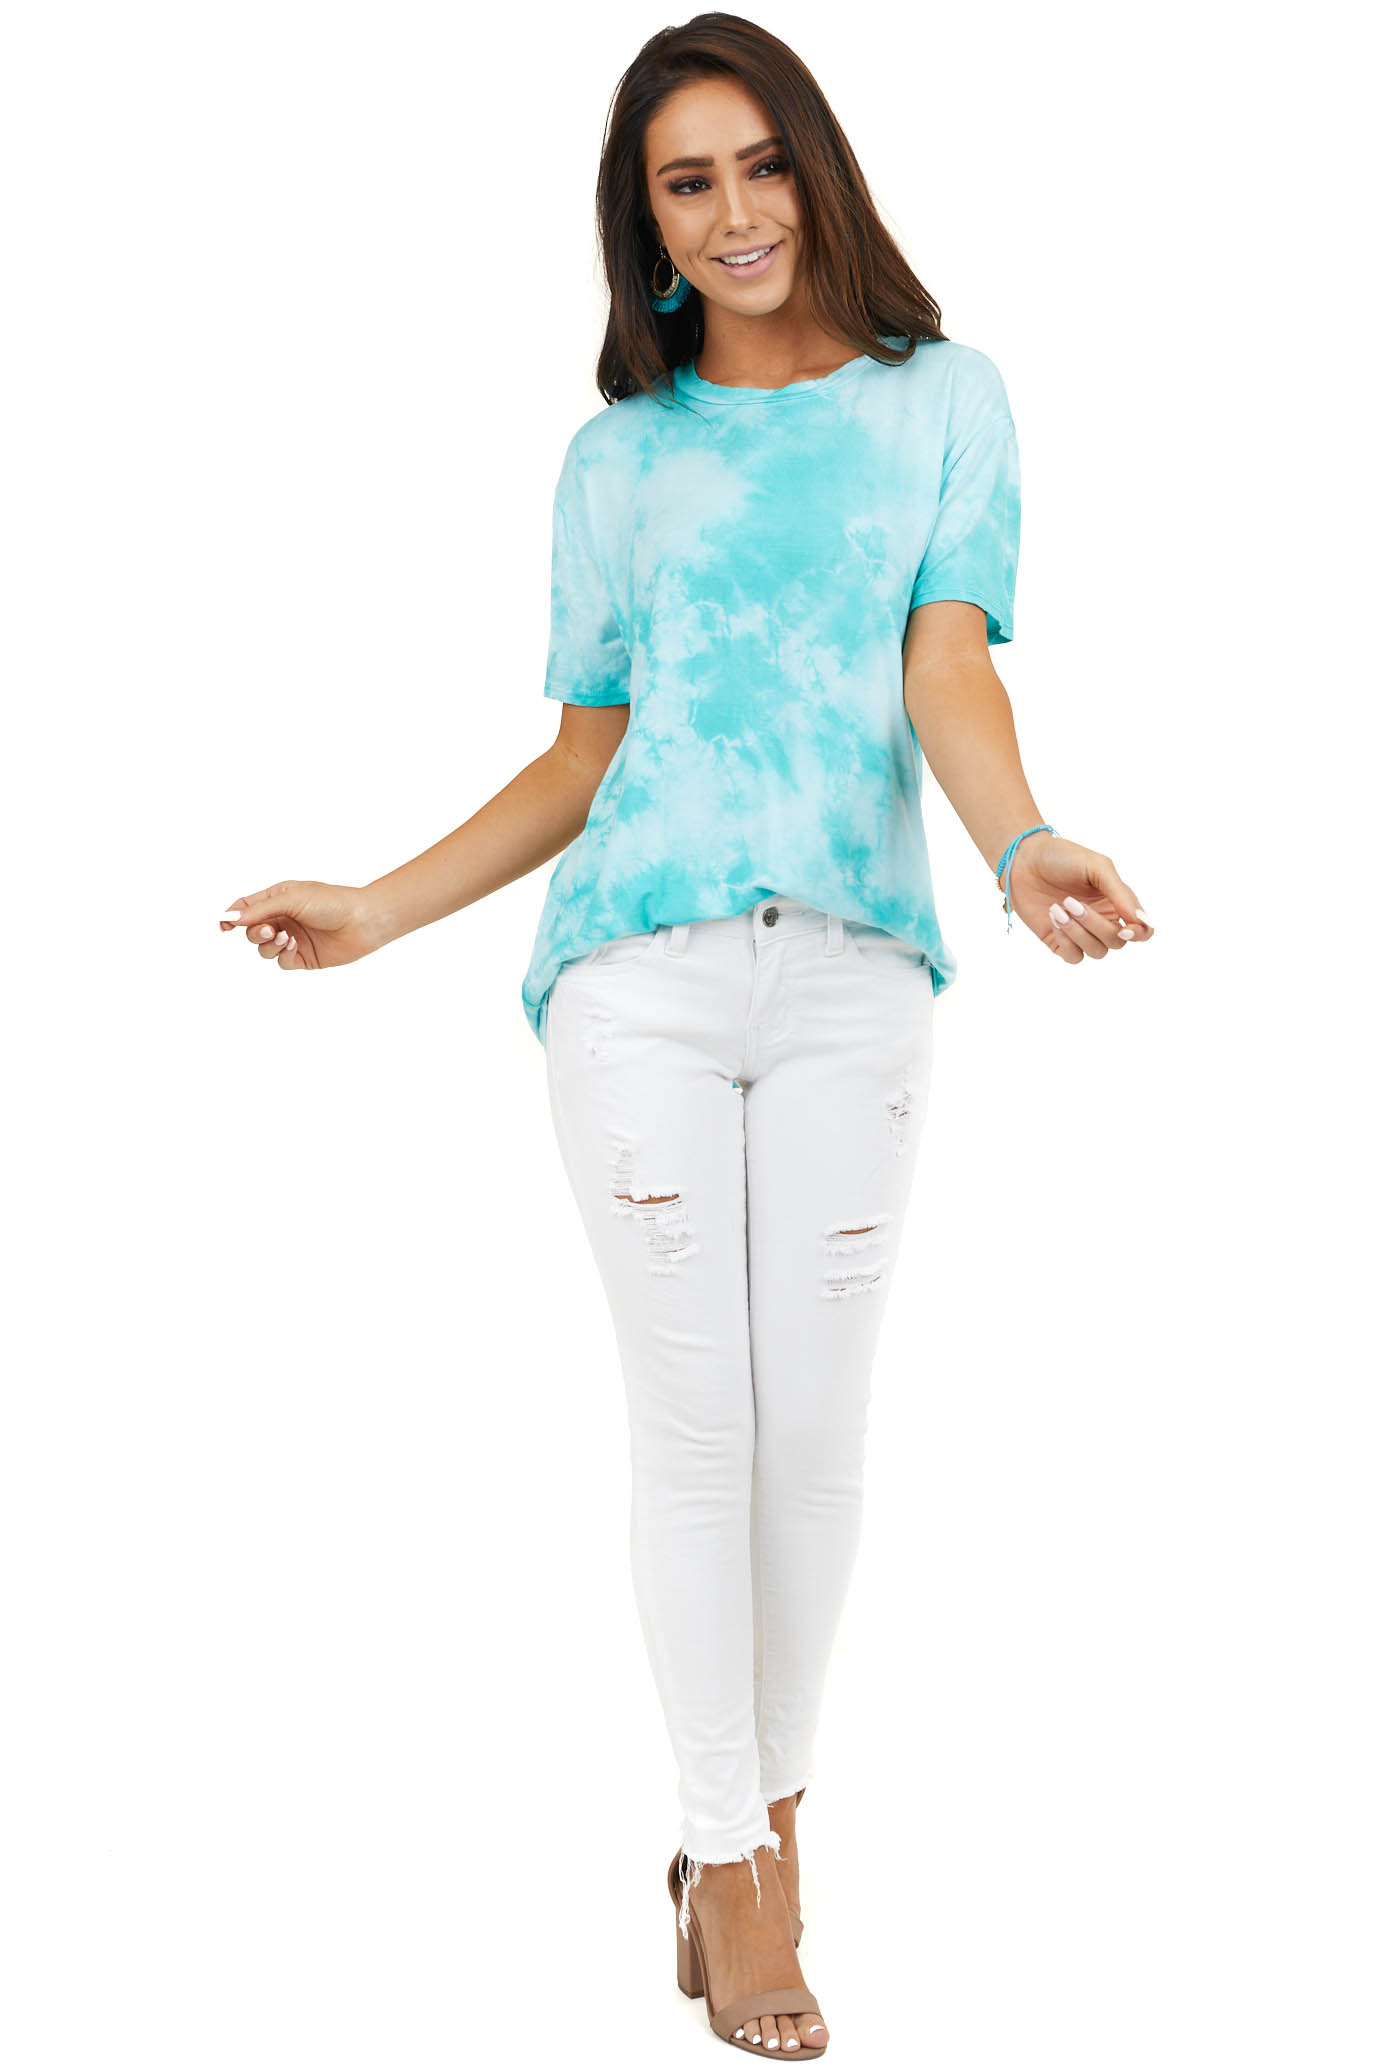 Turquoise Tie Dye Short Sleeve Top with Rounded Neckline